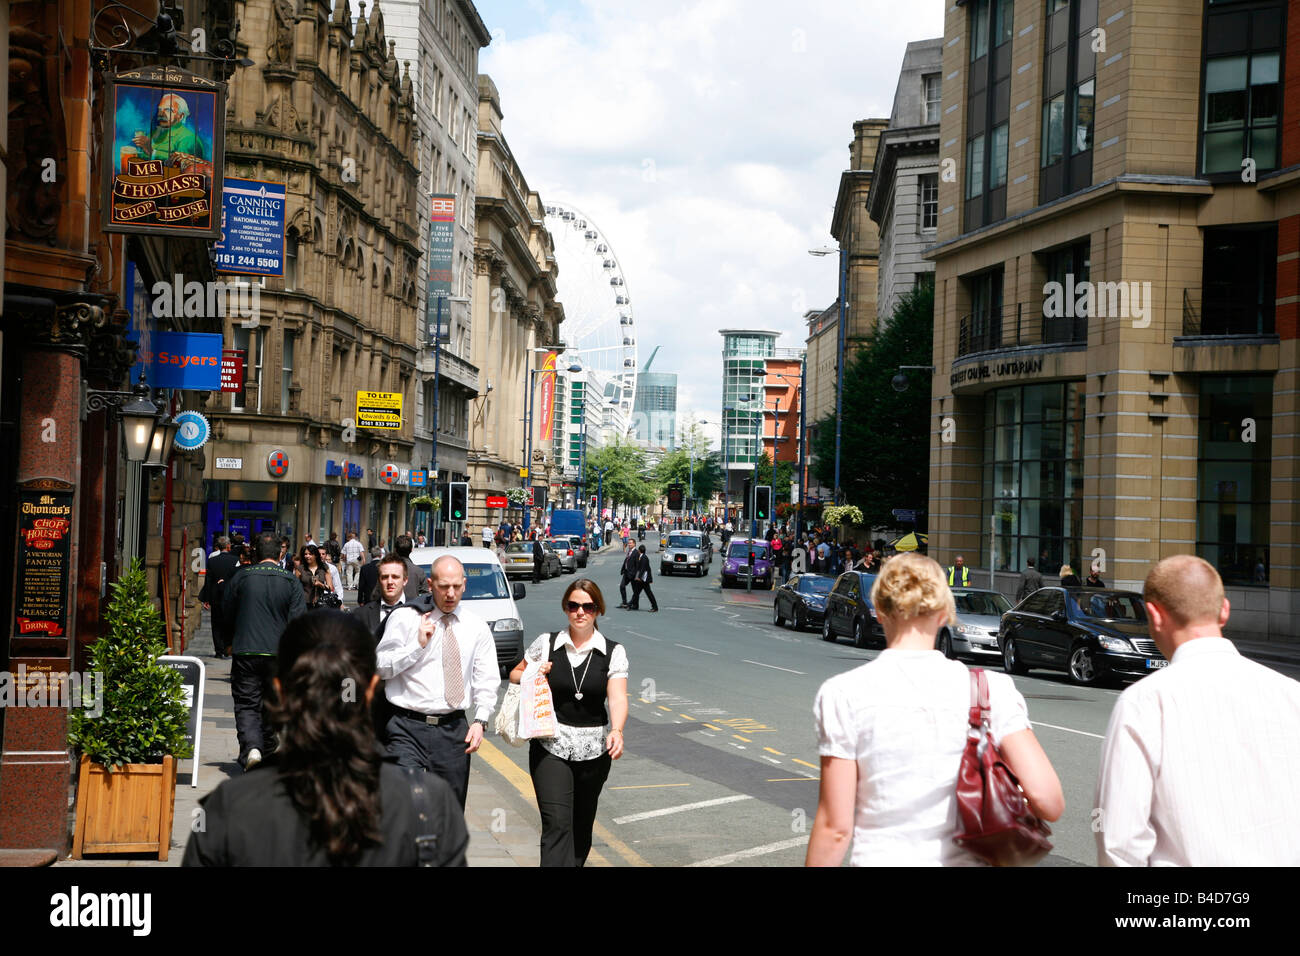 Aug 2008 - People on Cross street in the city center Manchester England UK - Stock Image